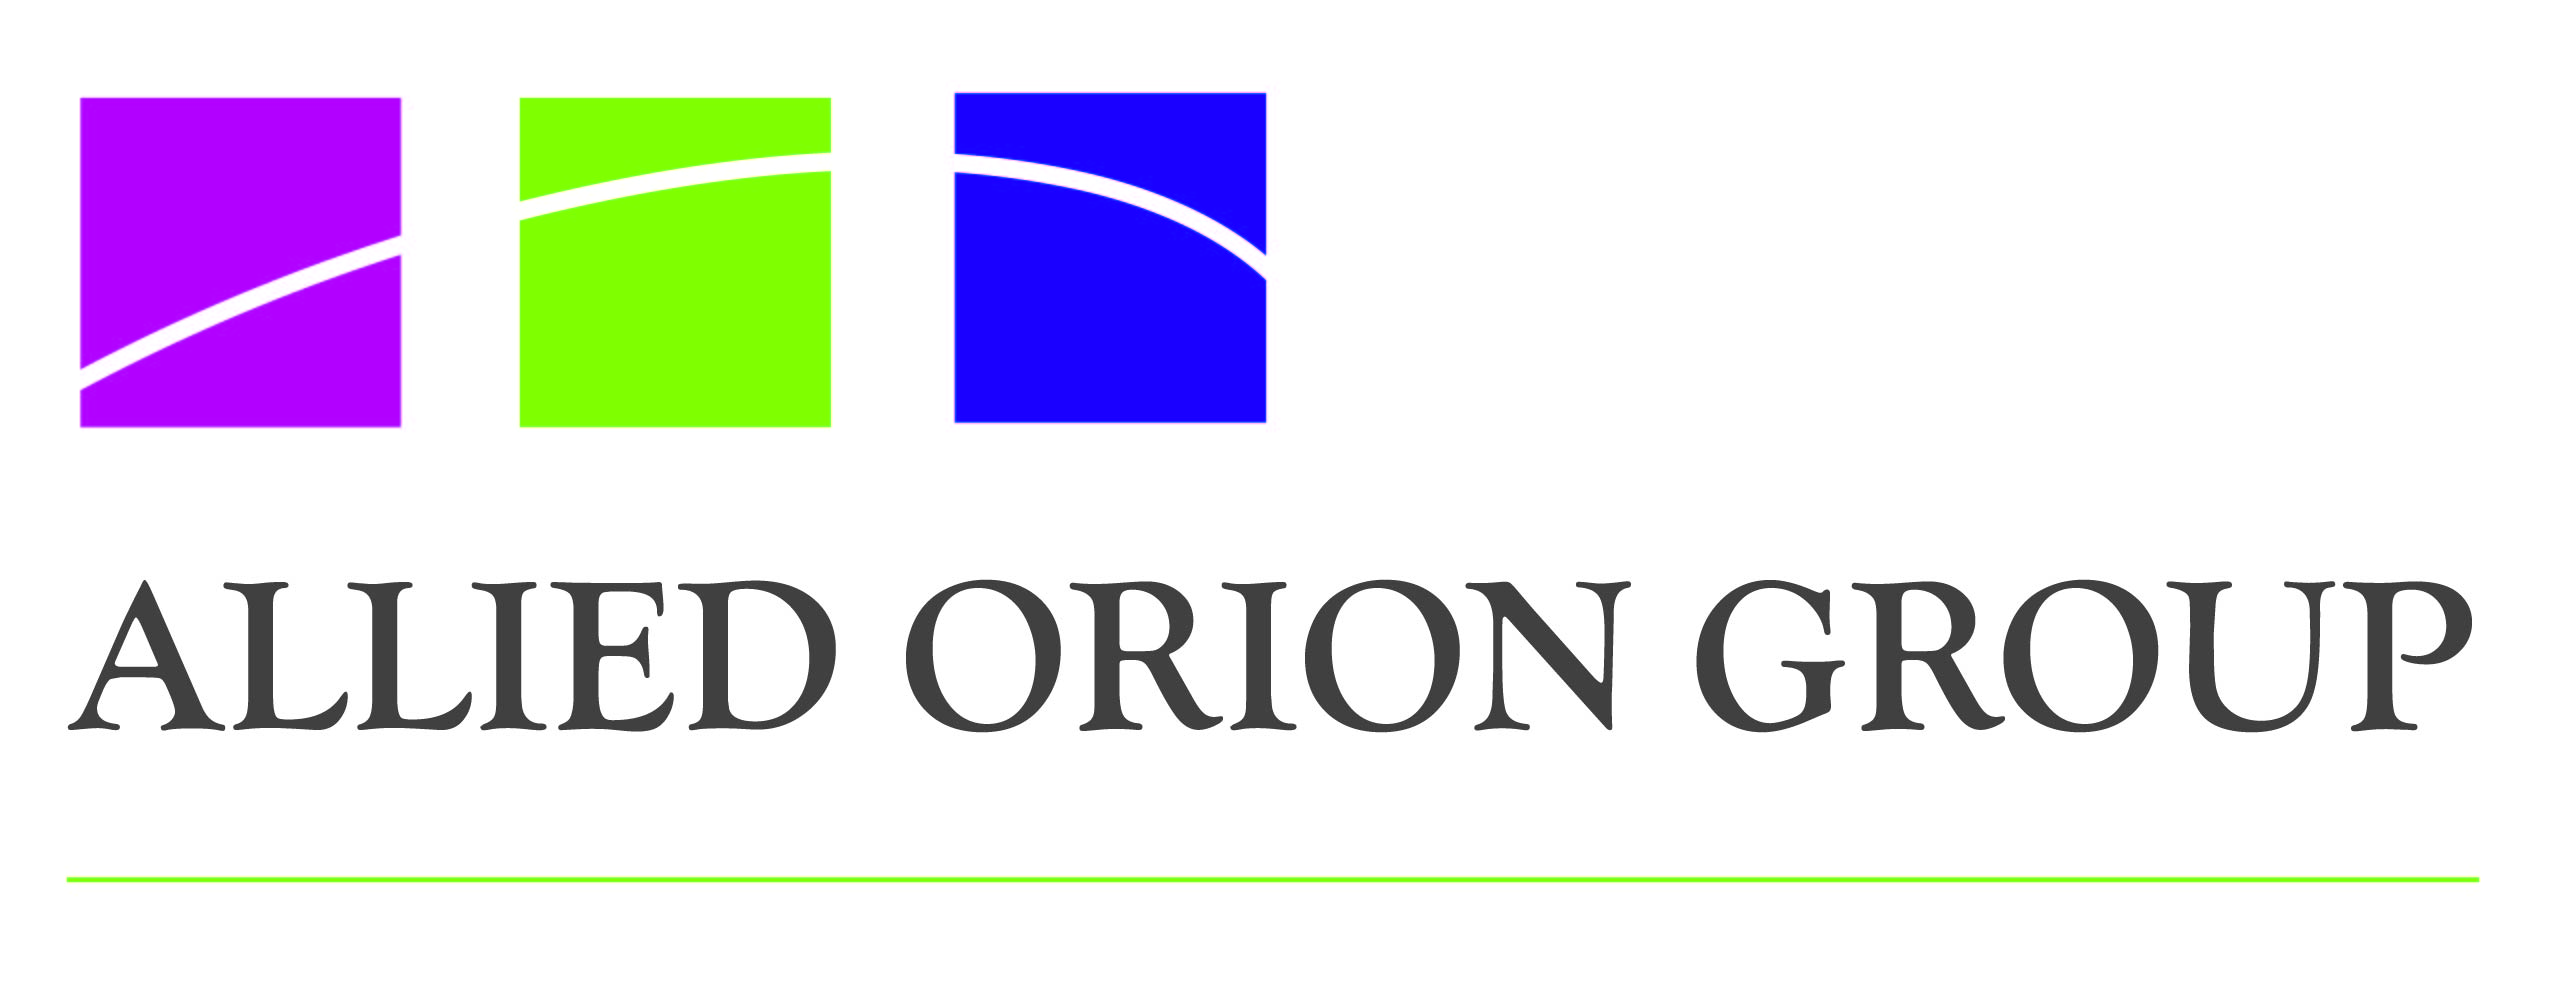 571 computer support specialist jobs now hiring in houston tx allied orion group logo